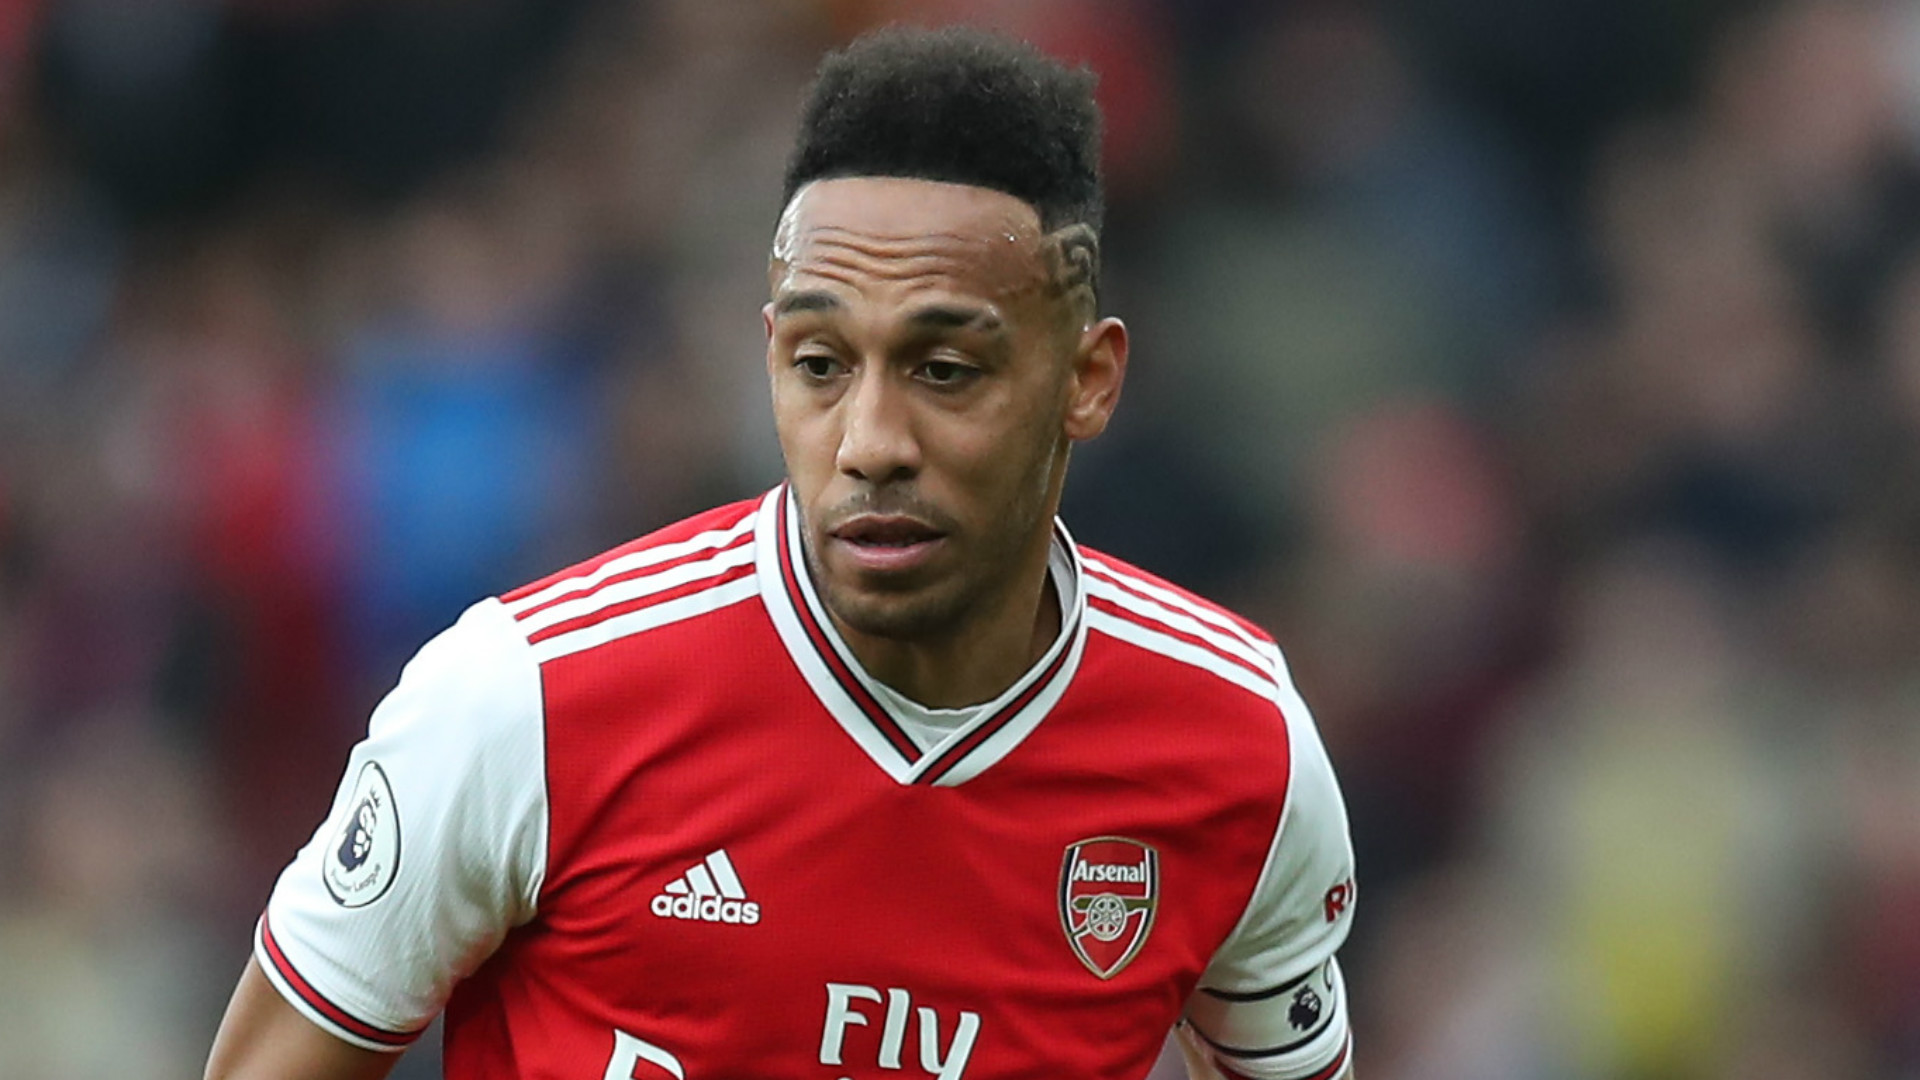 Aubameyang would be difficult to replace due to Arsenal's finances - Alan Smith